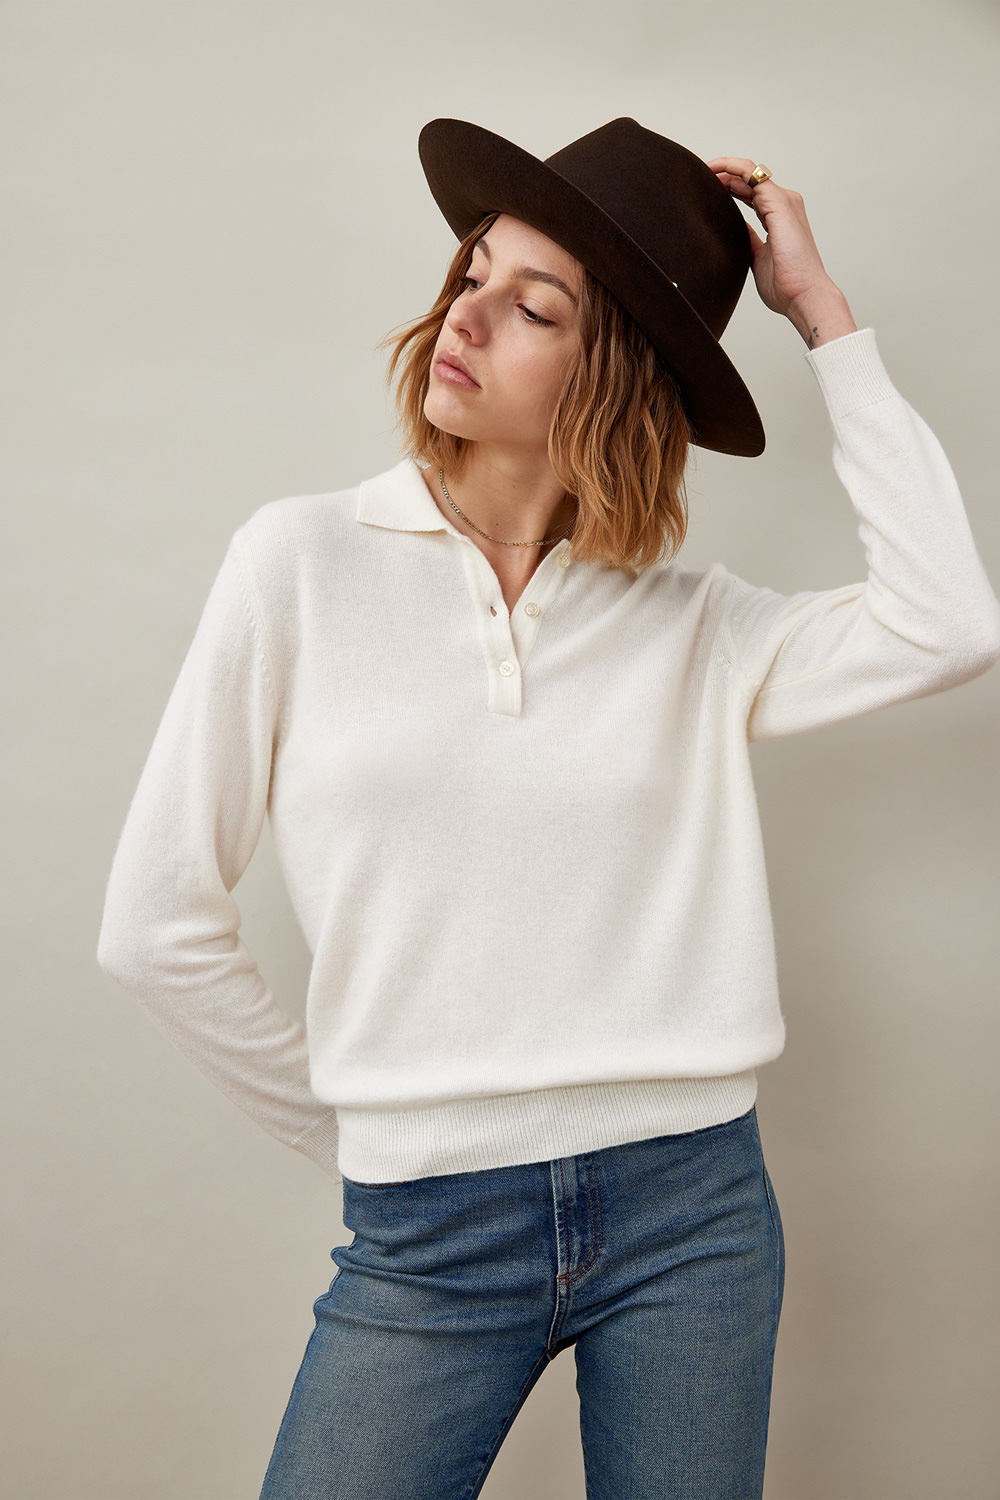 ROY ROGERS: POLO IN LANA E CASHMERE